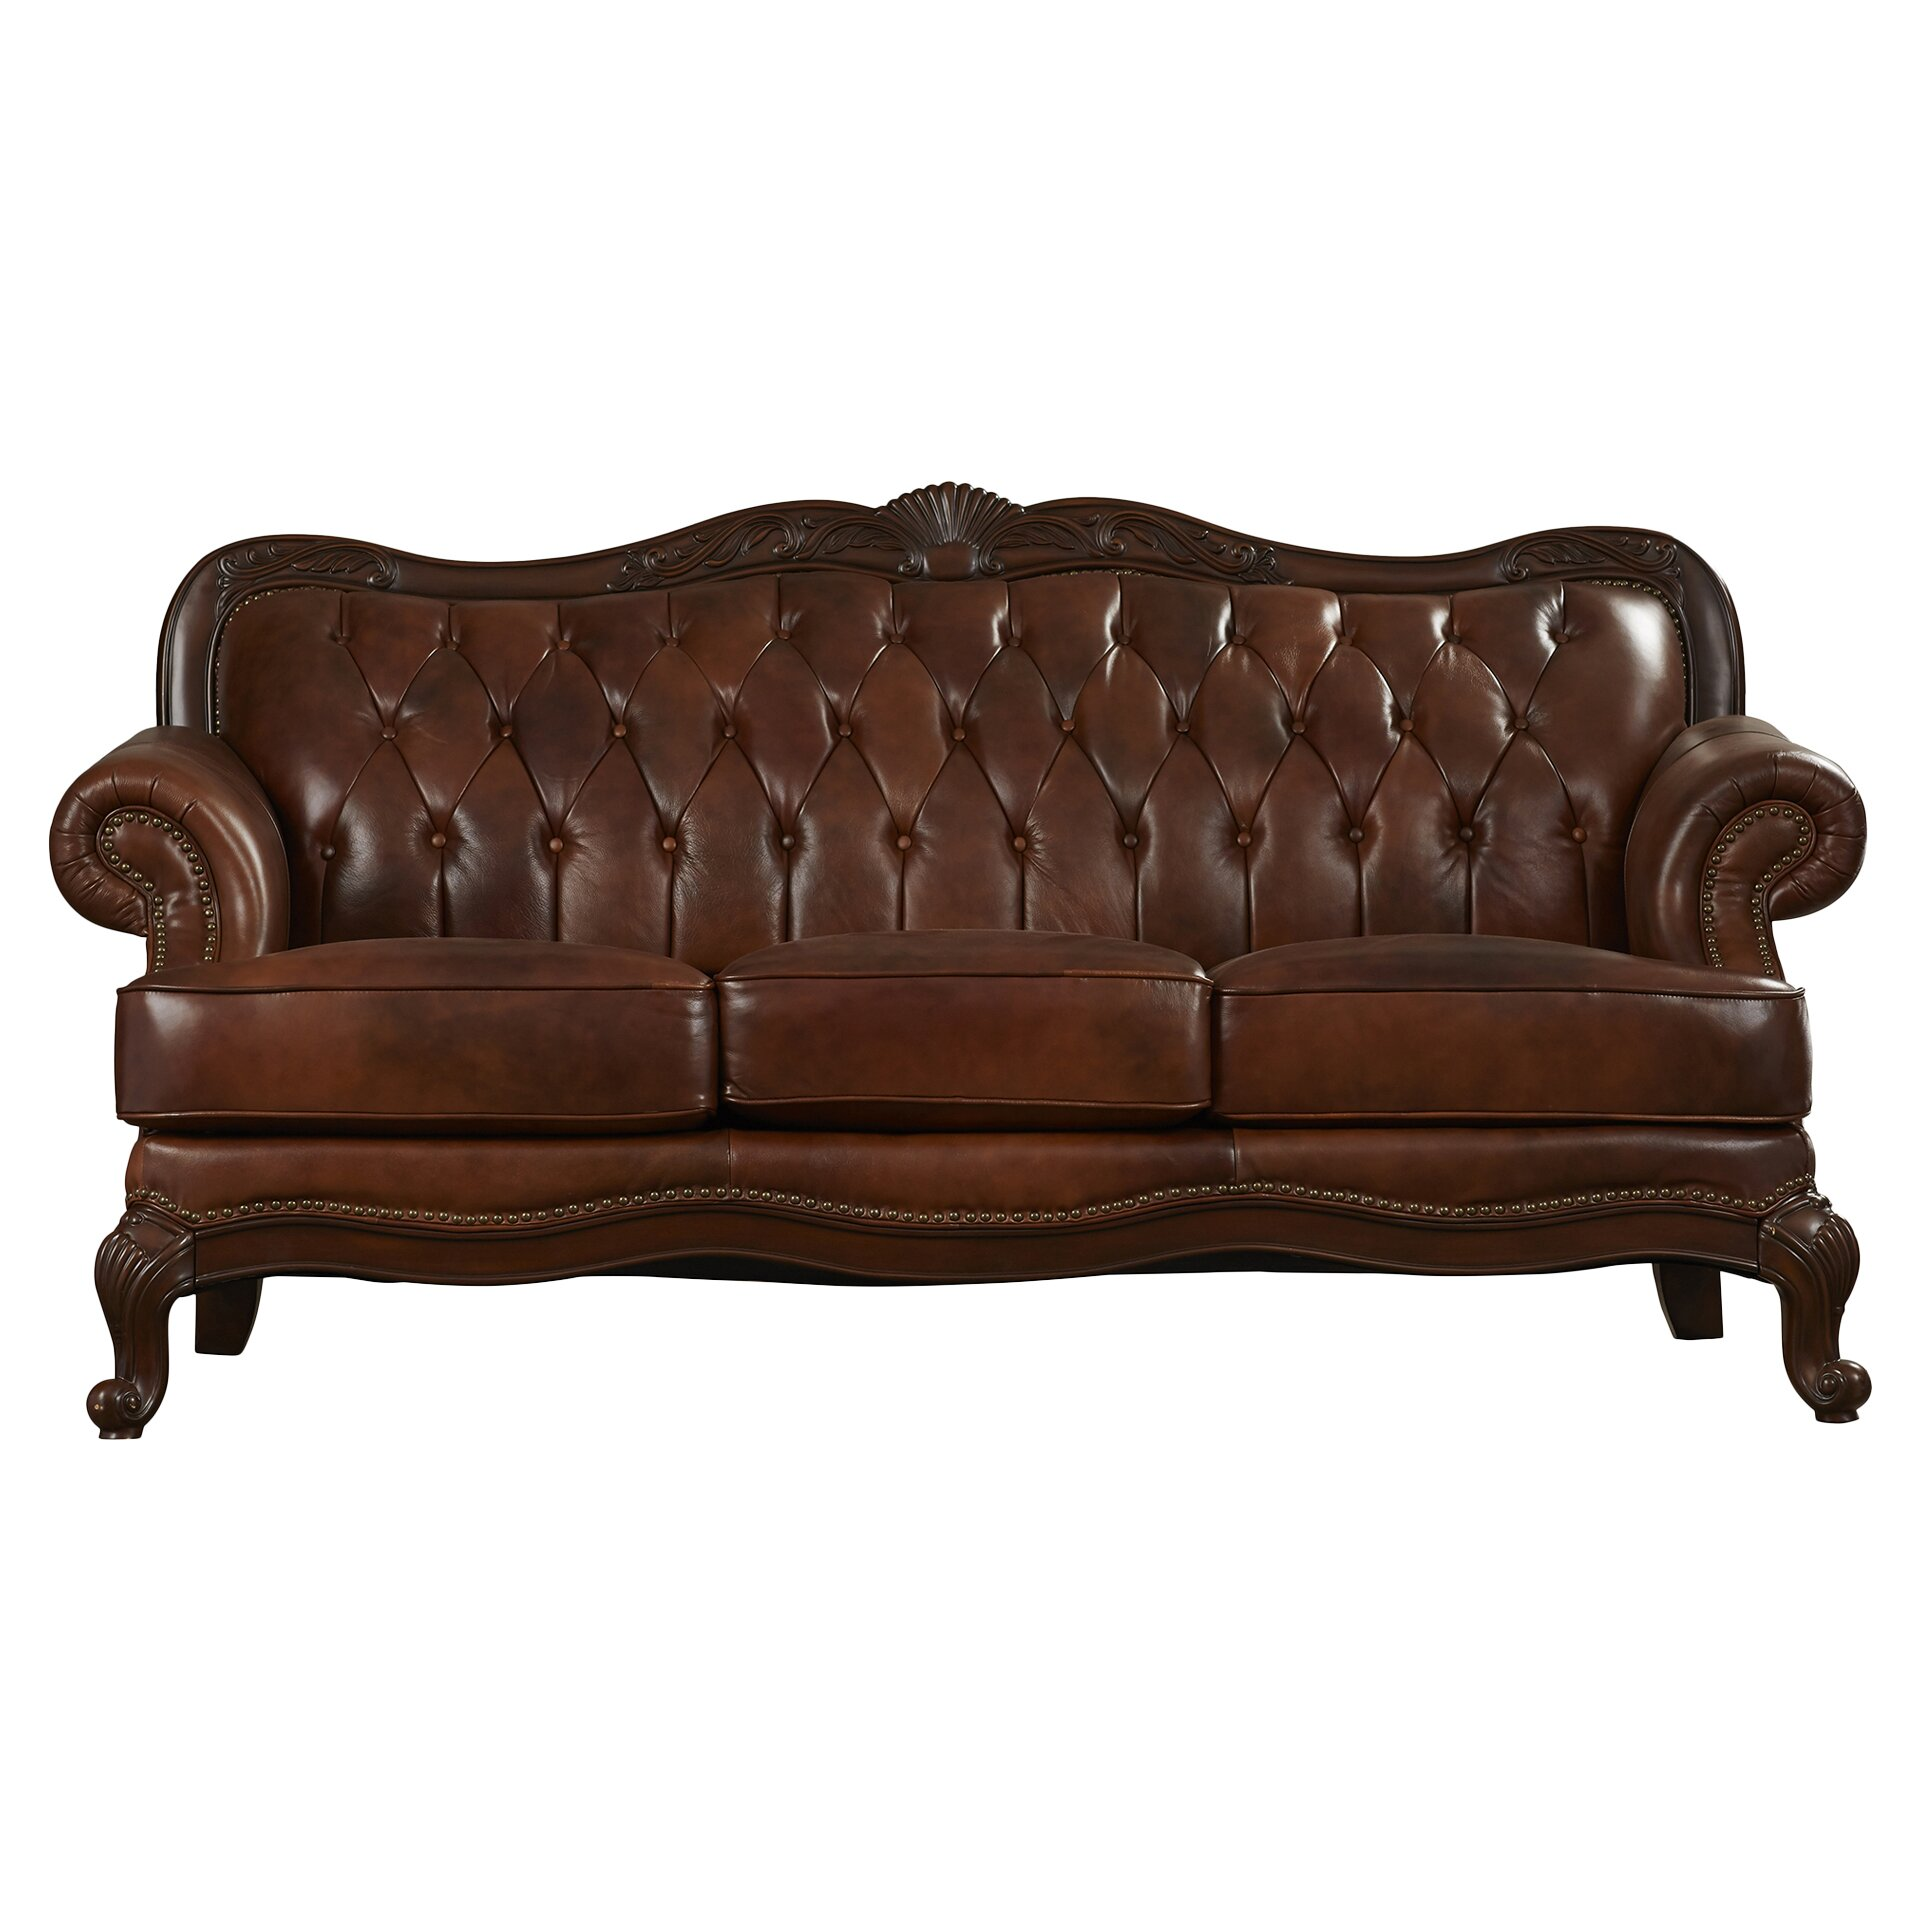 Darby Home Co Cambridge Leather Sofa Reviews Wayfair